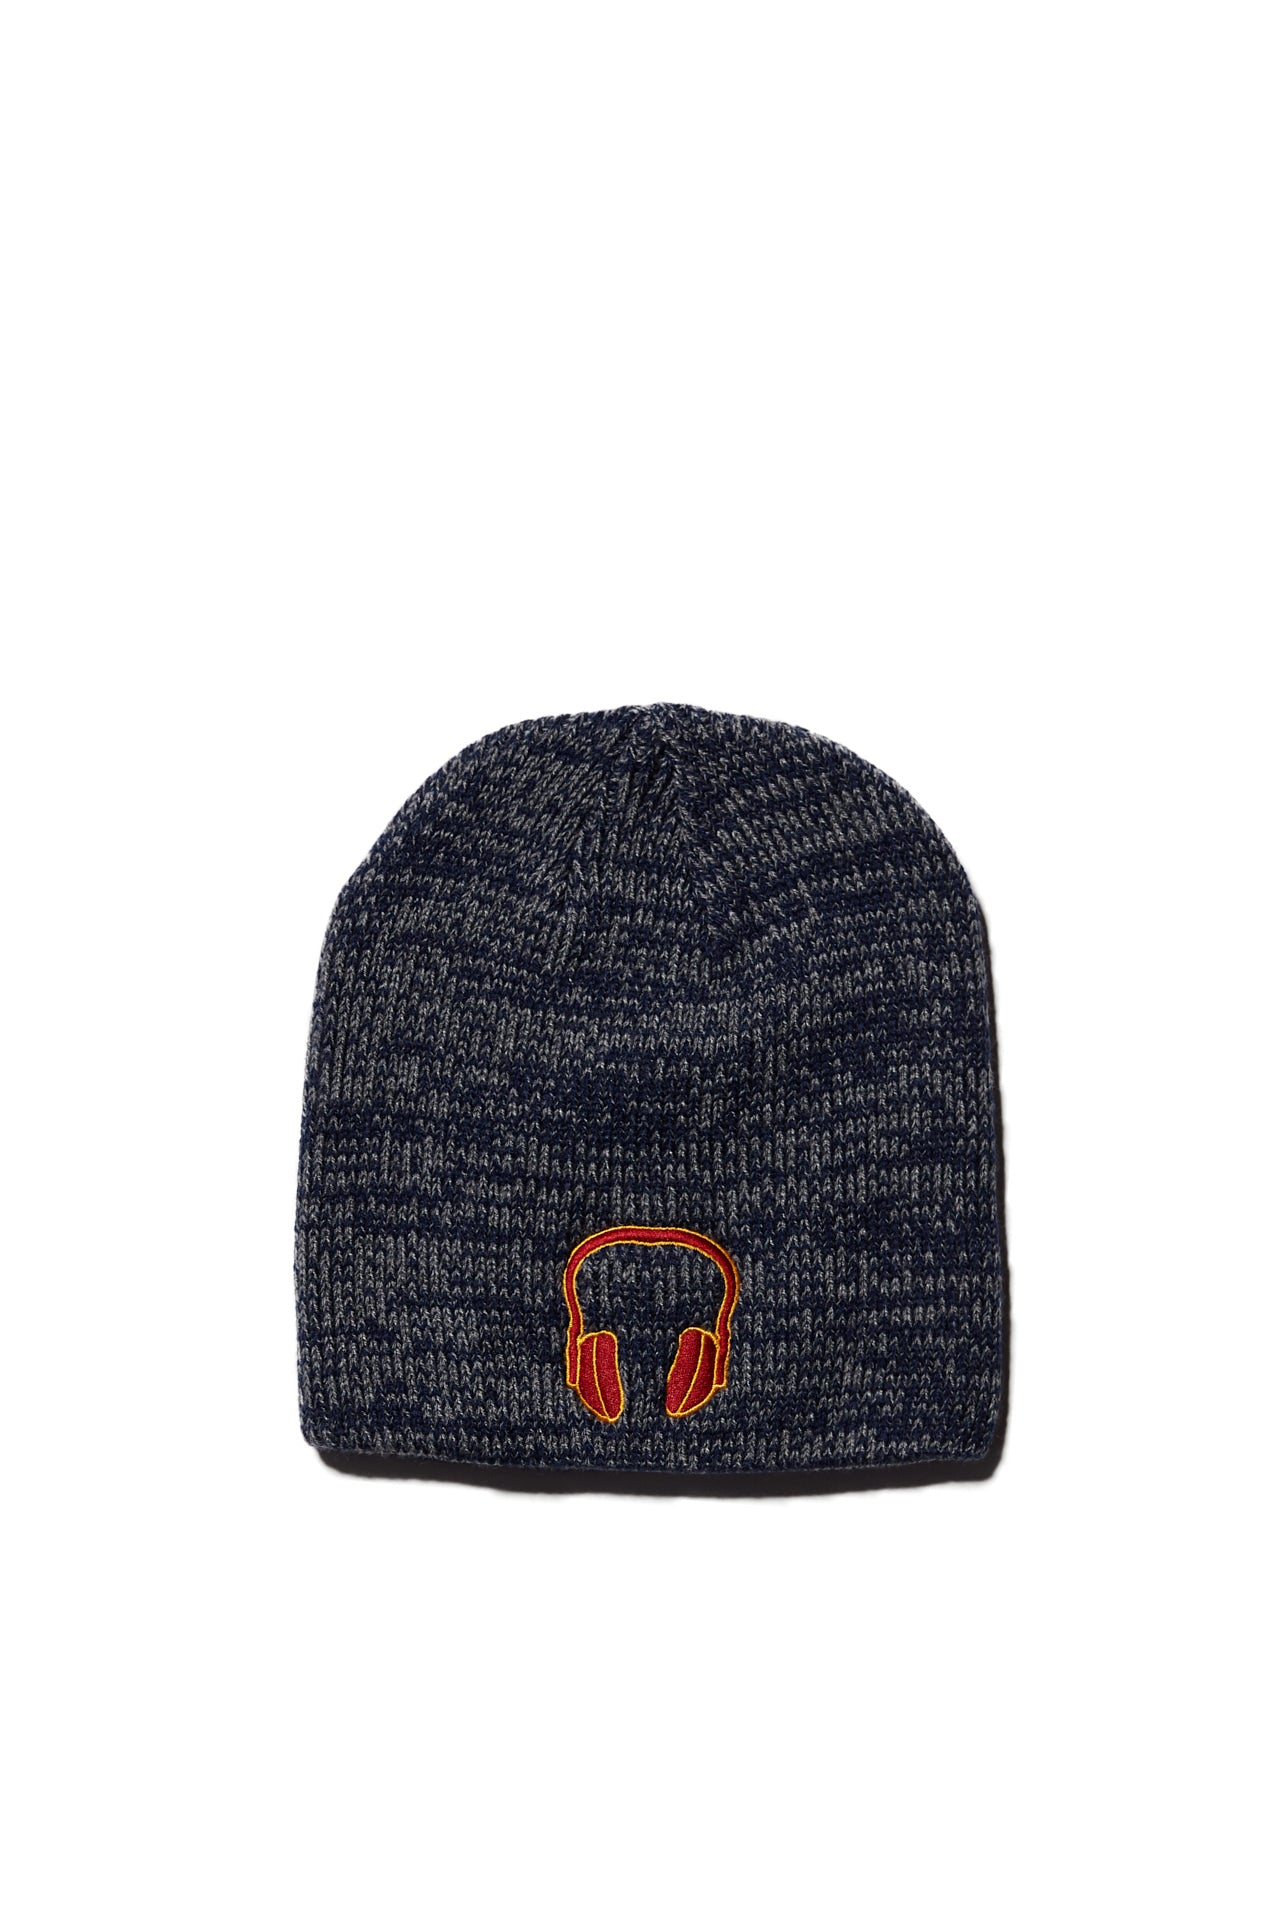 HEADPHONE EMBROIDERED NAVY & DARK GRAY MARLED KNIT BEANIE